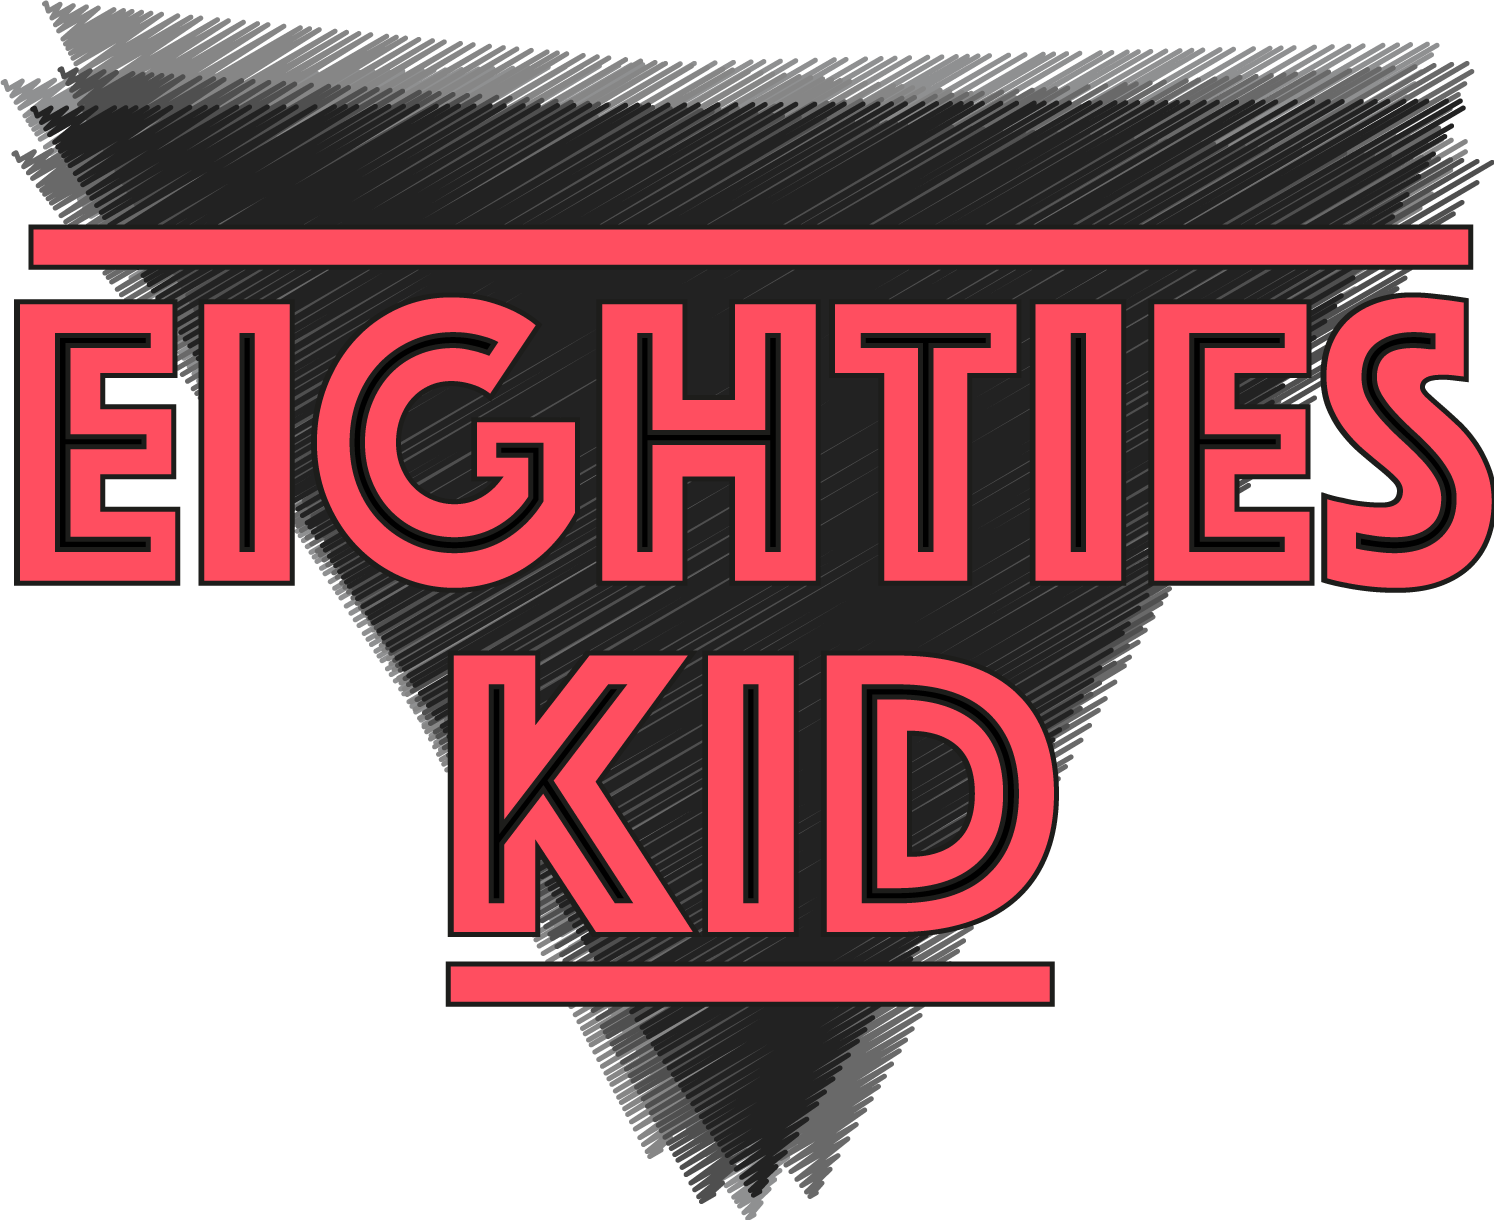 Eighties Kid Music